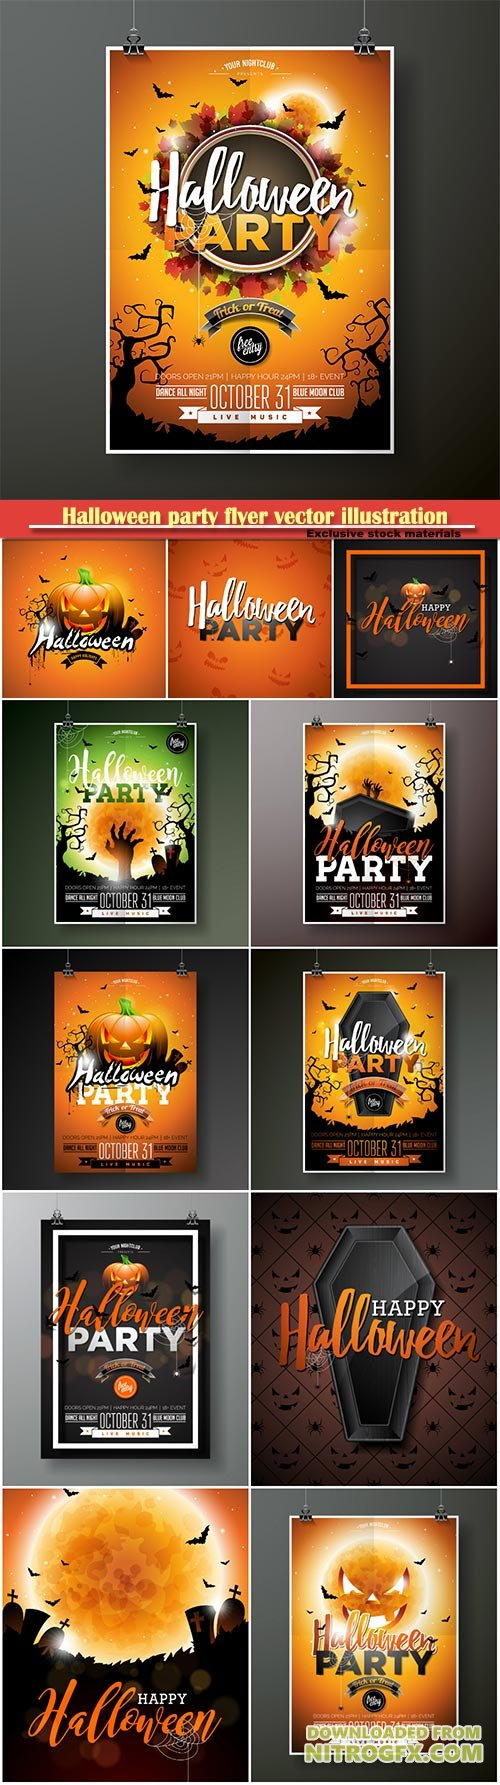 Halloween party flyer vector illustration with moon on orange sky background, spiders and bats for party invitation, greeting card